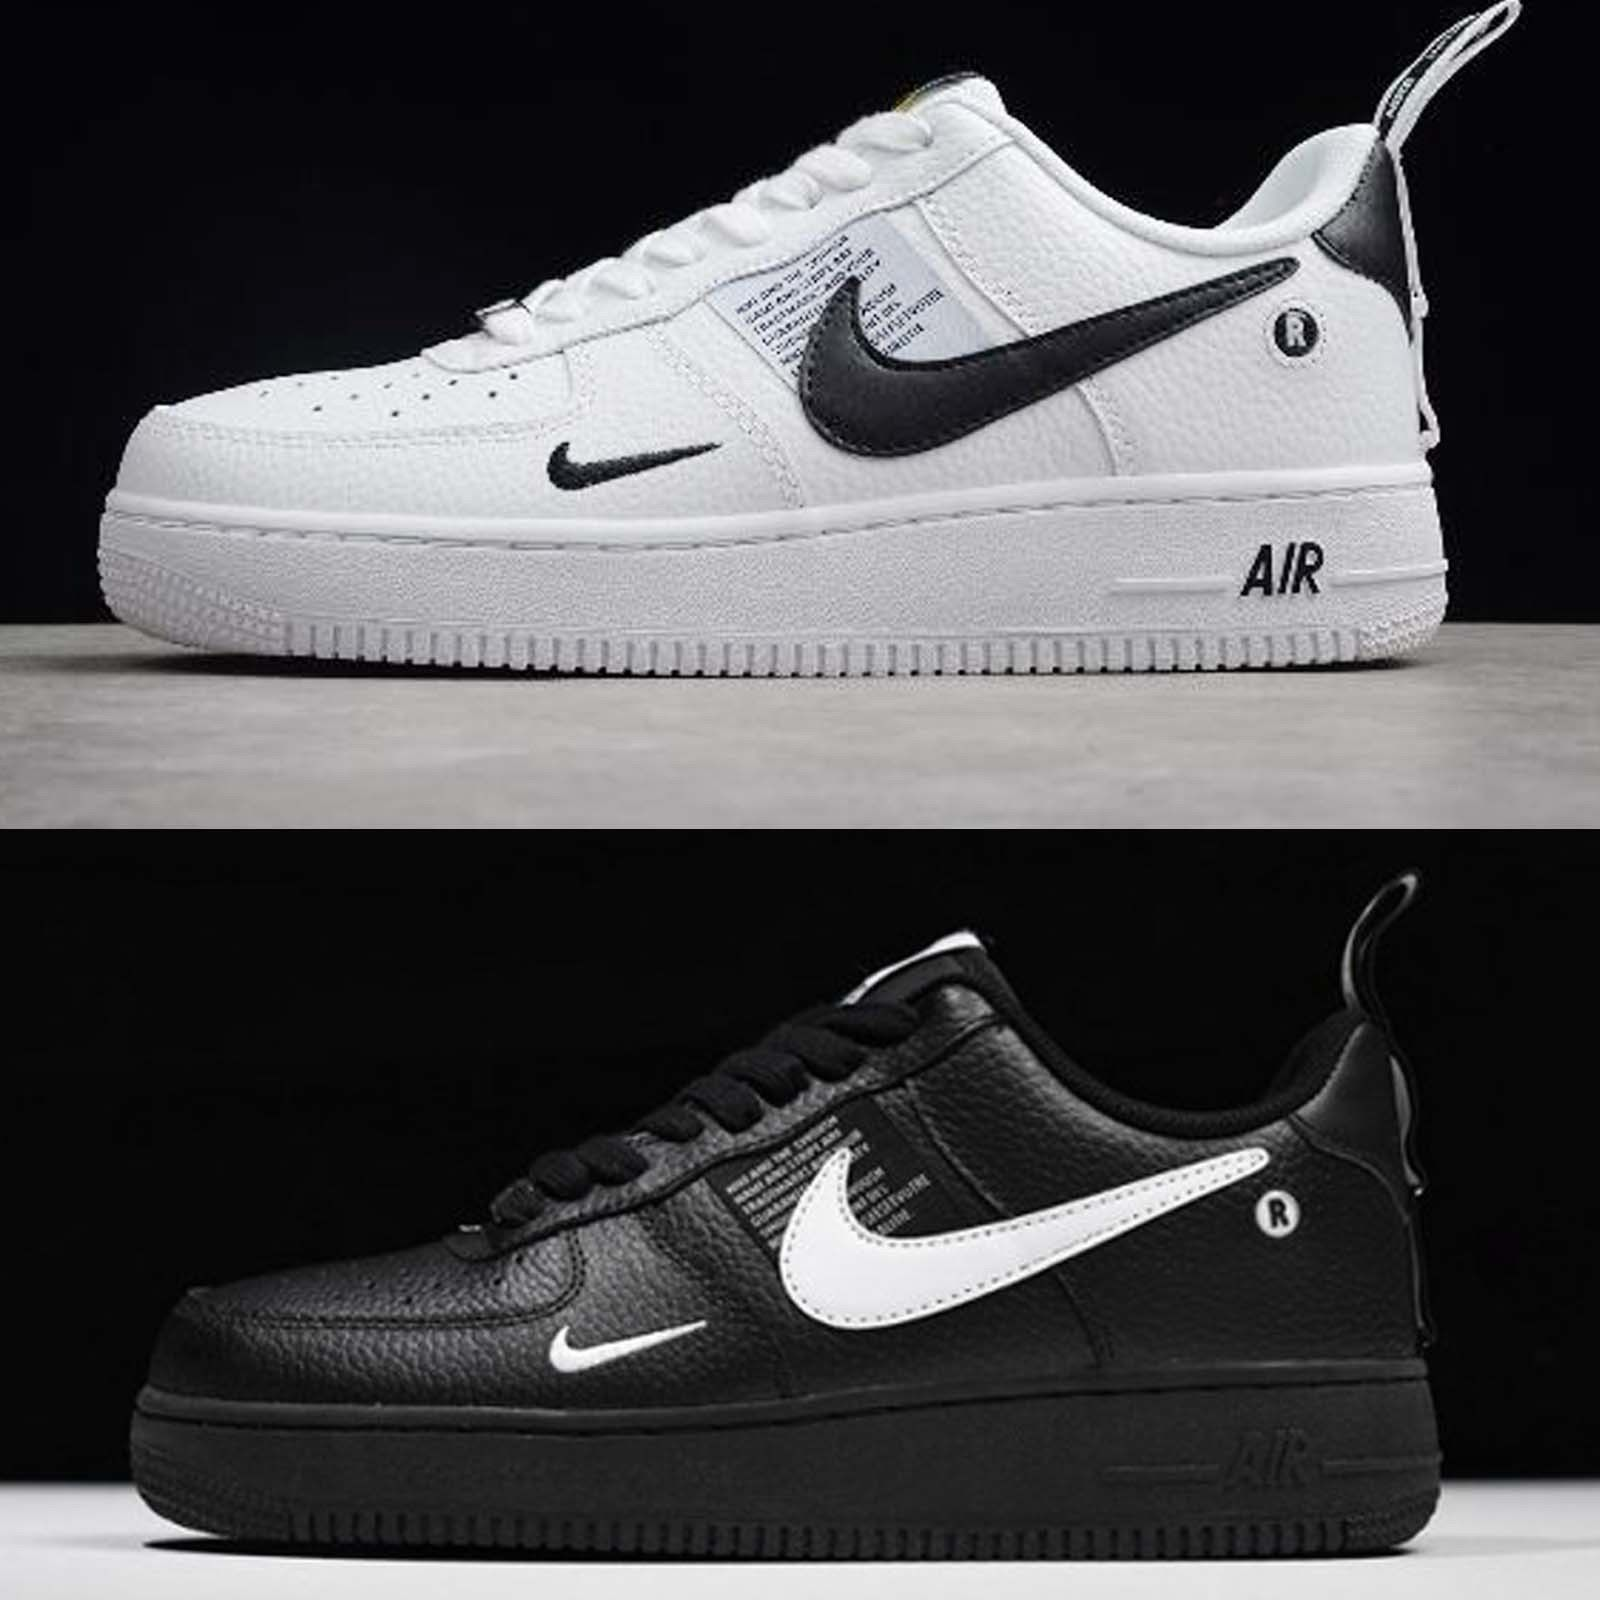 Nike Air Force 1 07 Lv8 Utility Back And White Nike Air Force Black Nike Air Shoes Sneakers Fashion